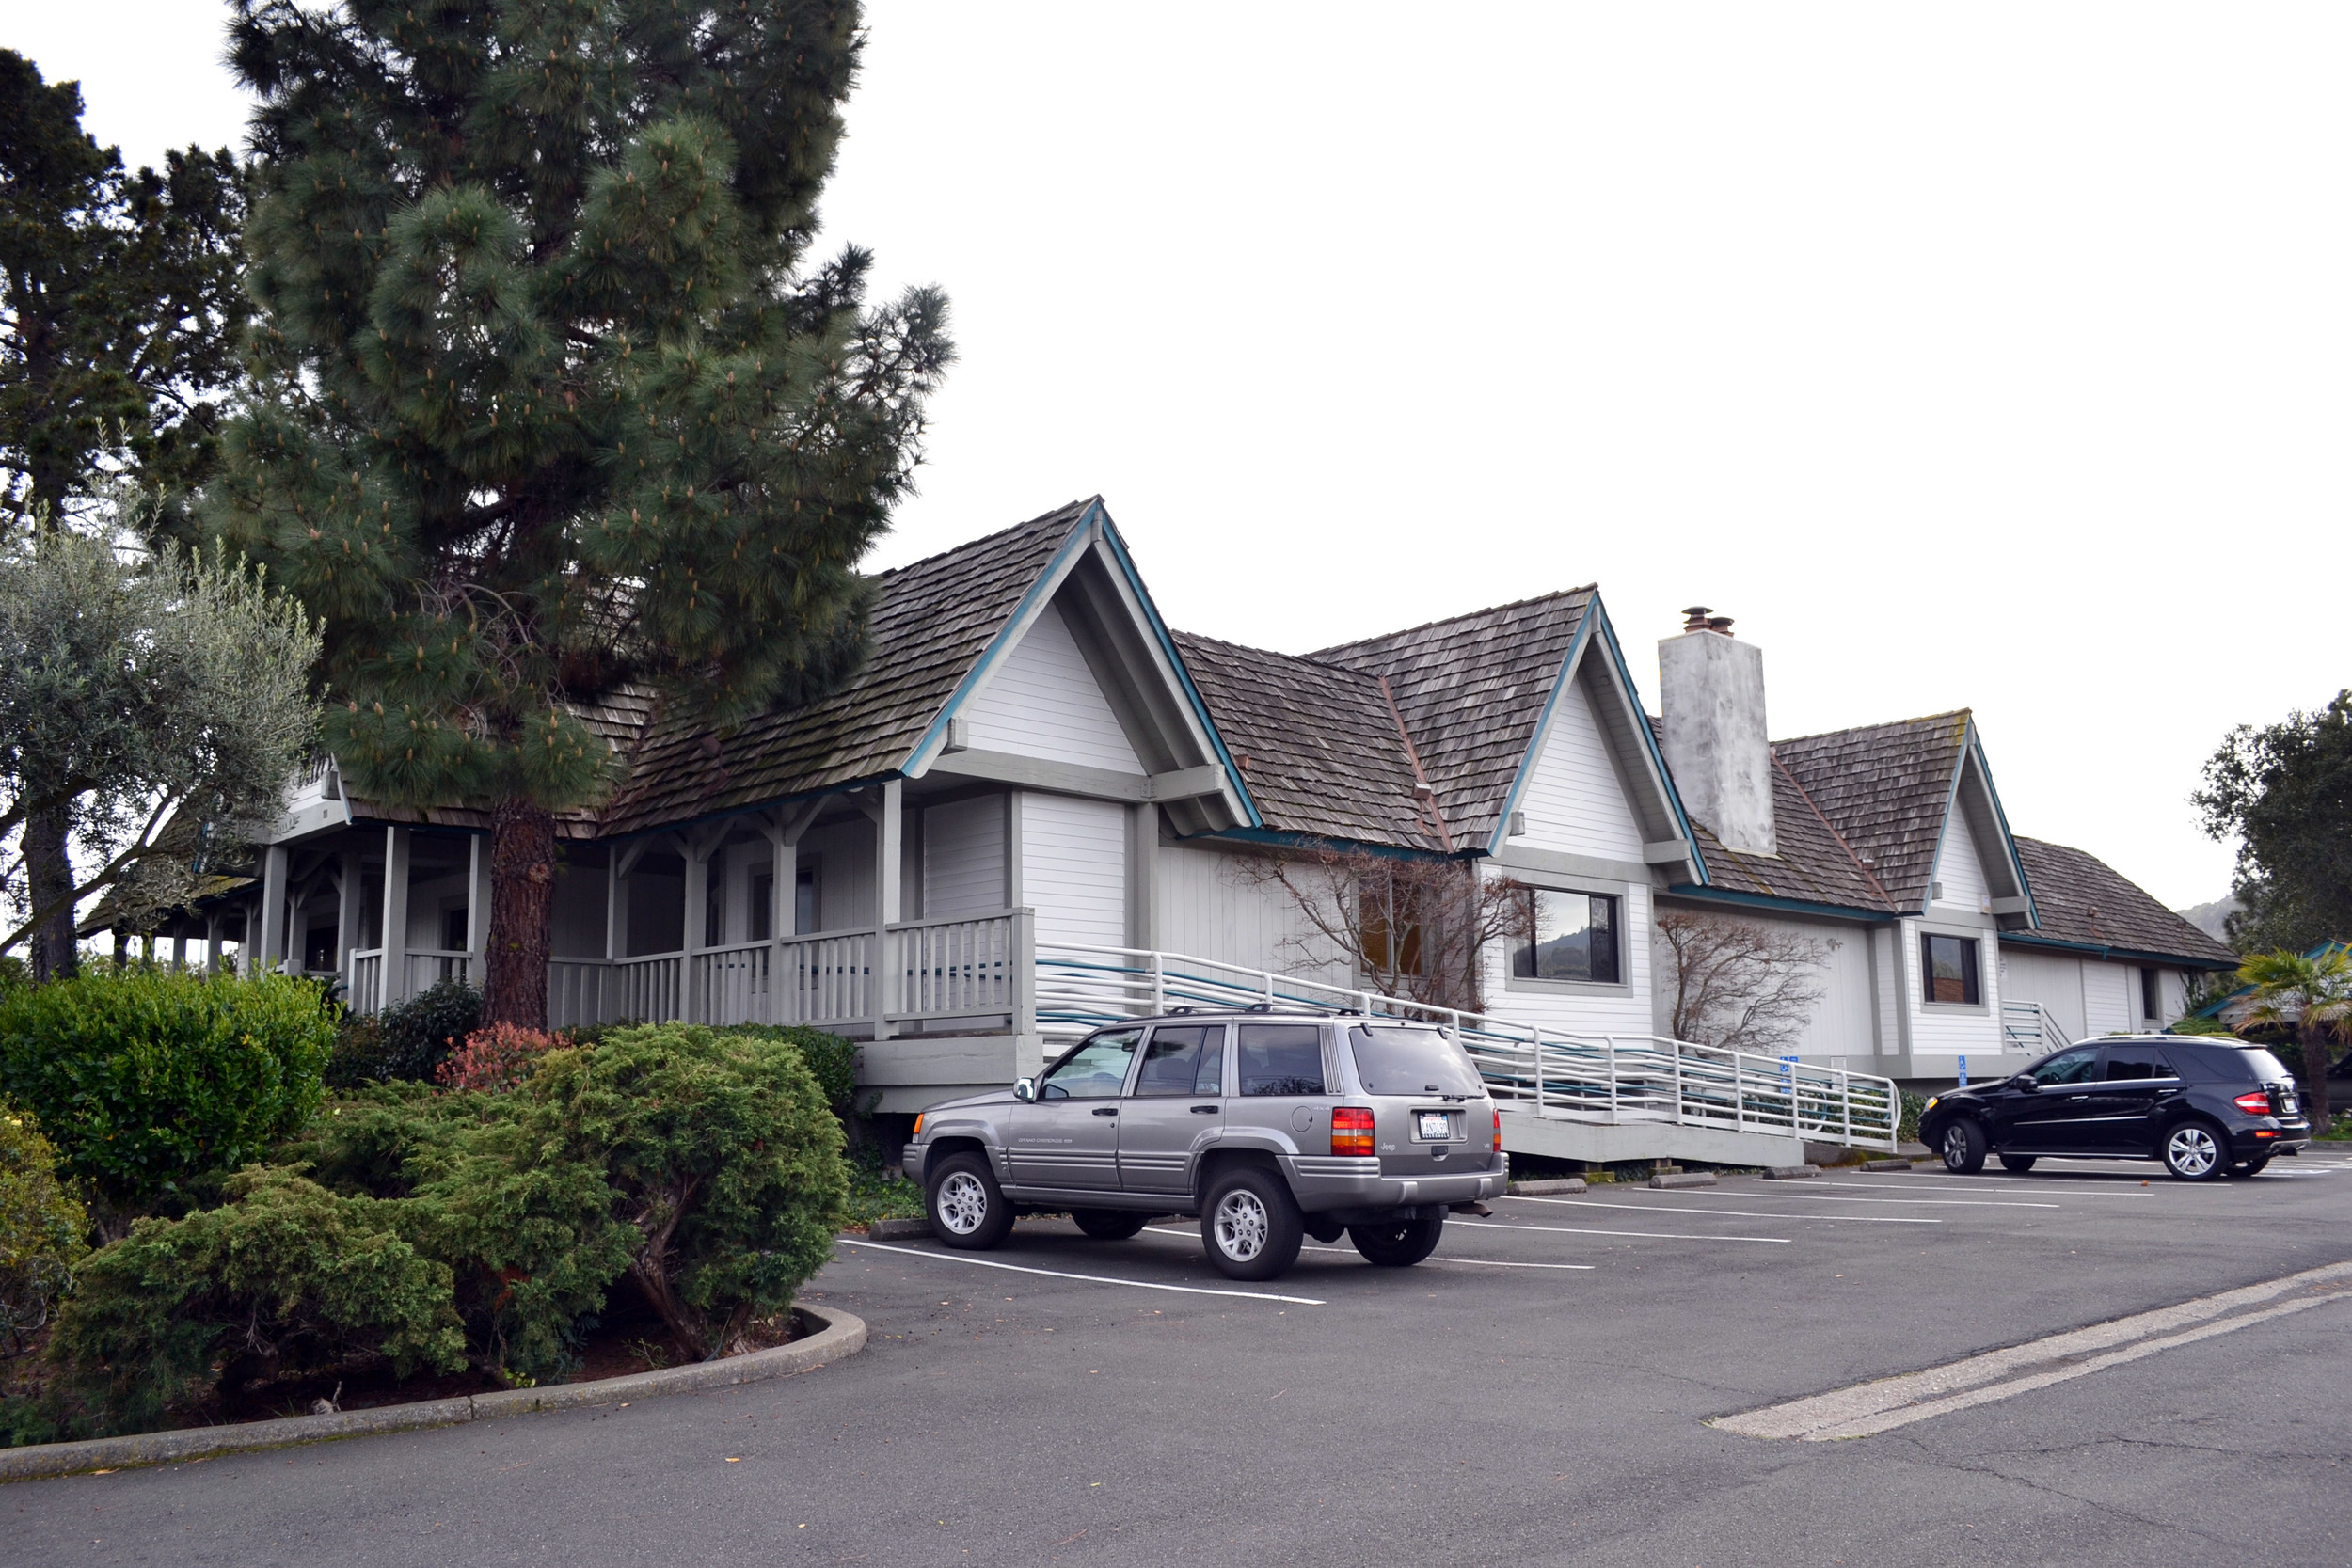 Corte Madera, Marin County  $1.8 million - 1st Trust Deed for Marin office building